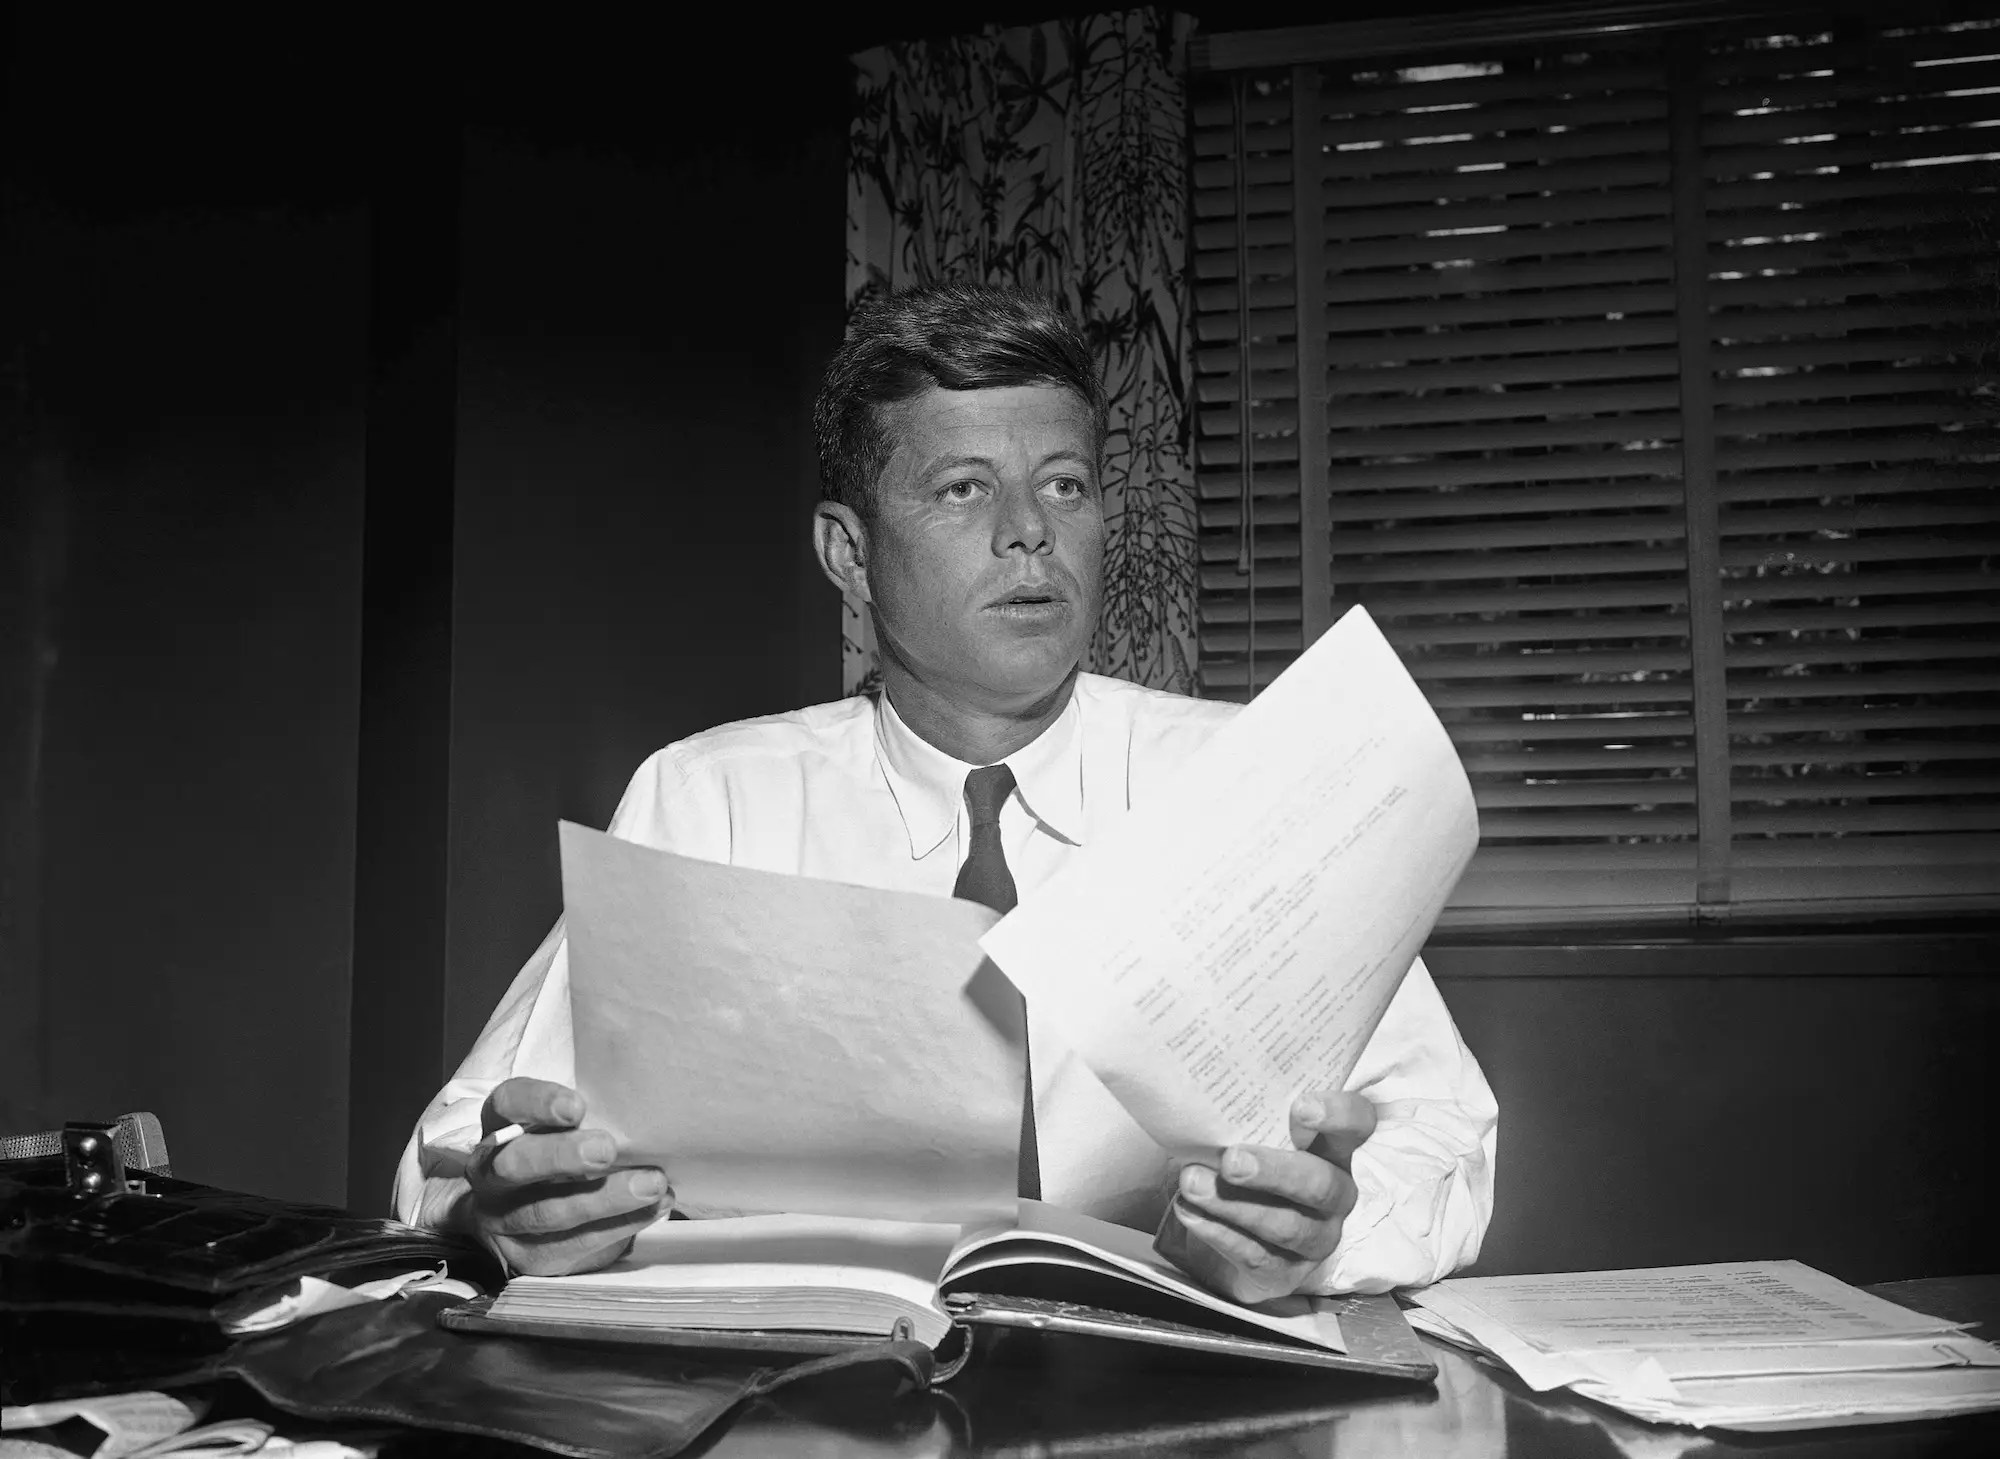 A 'high-priced Hollywood call girl' told the FBI that a private detective was looking into 'sex parties' involving Kennedy.